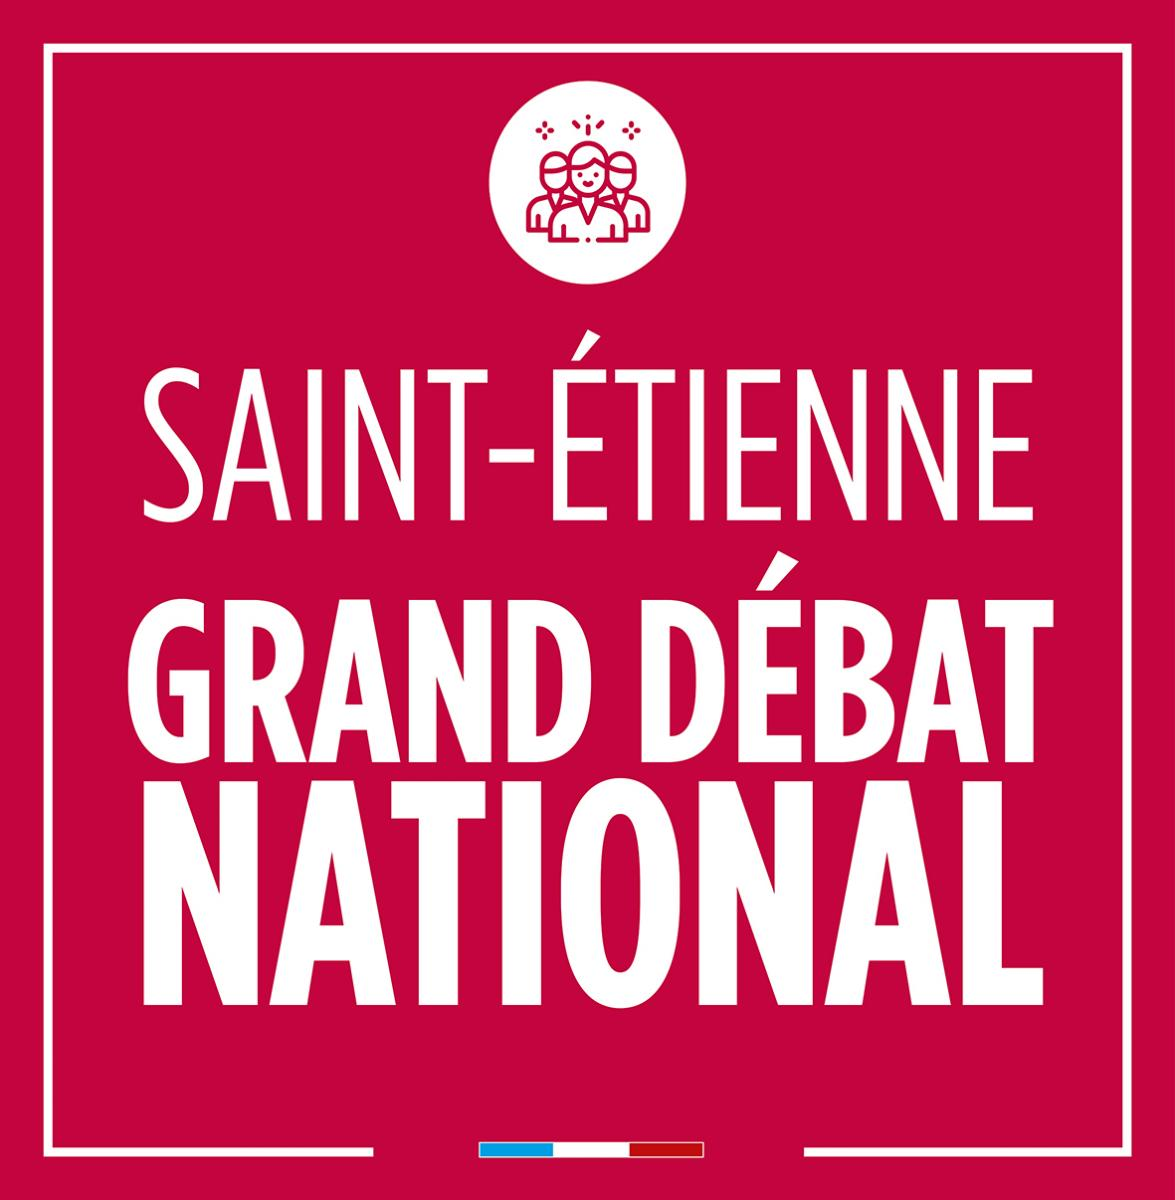 Saint-Étienne : grand débat national